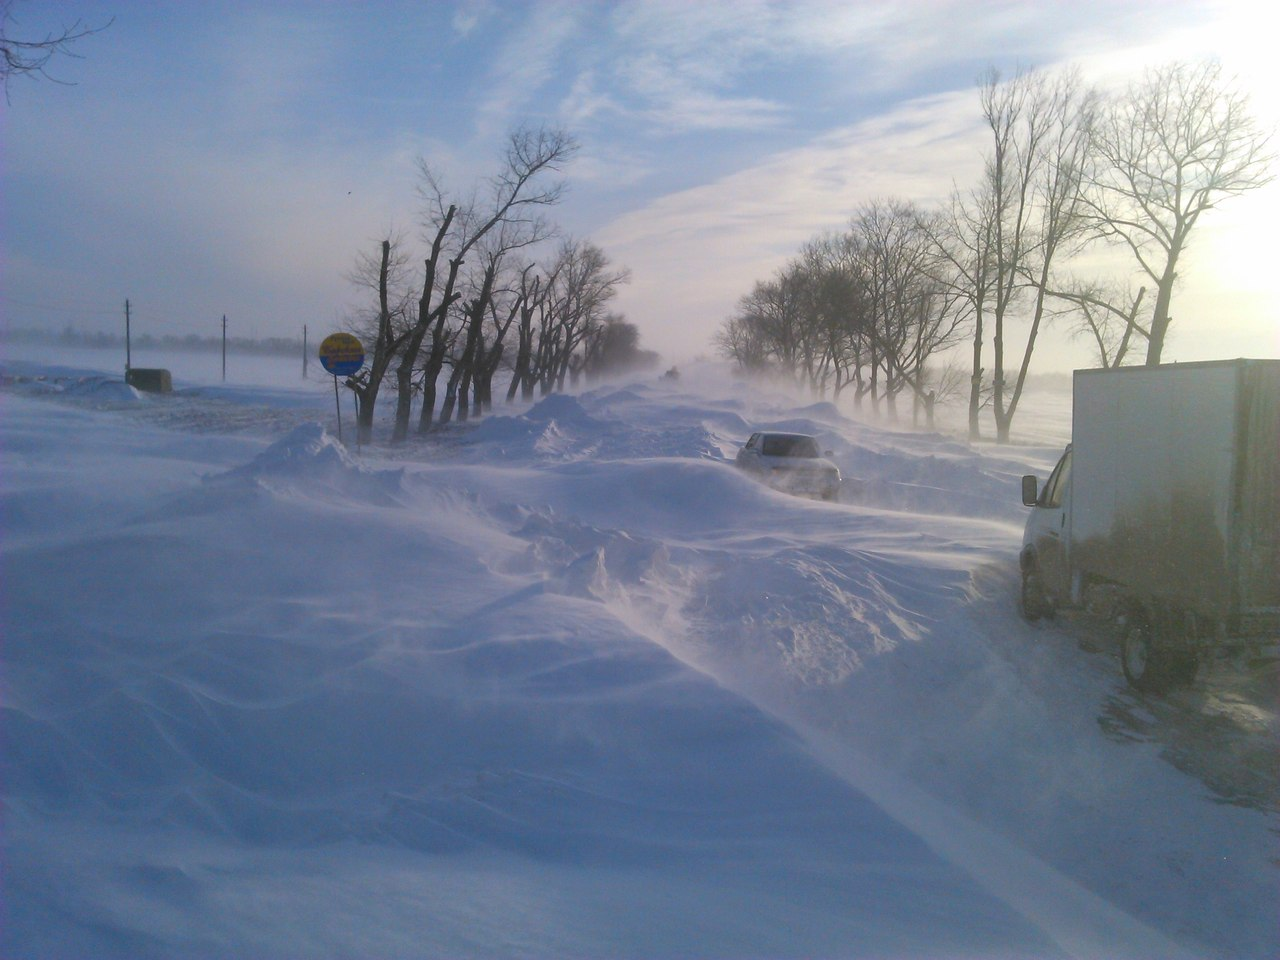 Rostov-on-Don: areas, climate and ecology